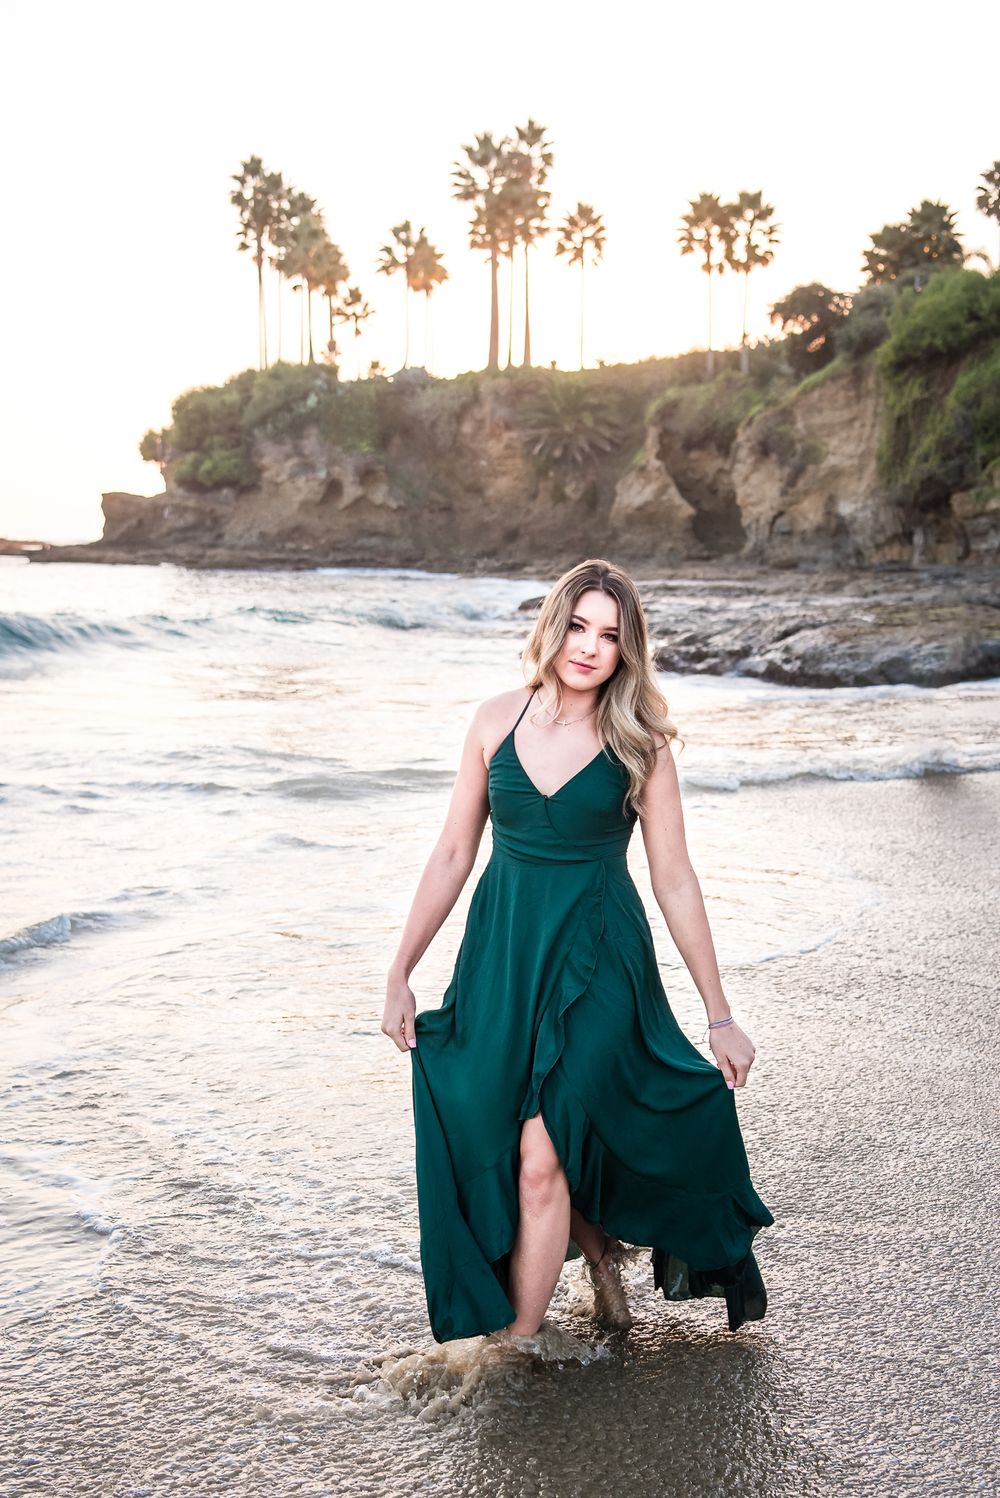 Image of a high school senior girl on the beach in Laguna Beach, CA